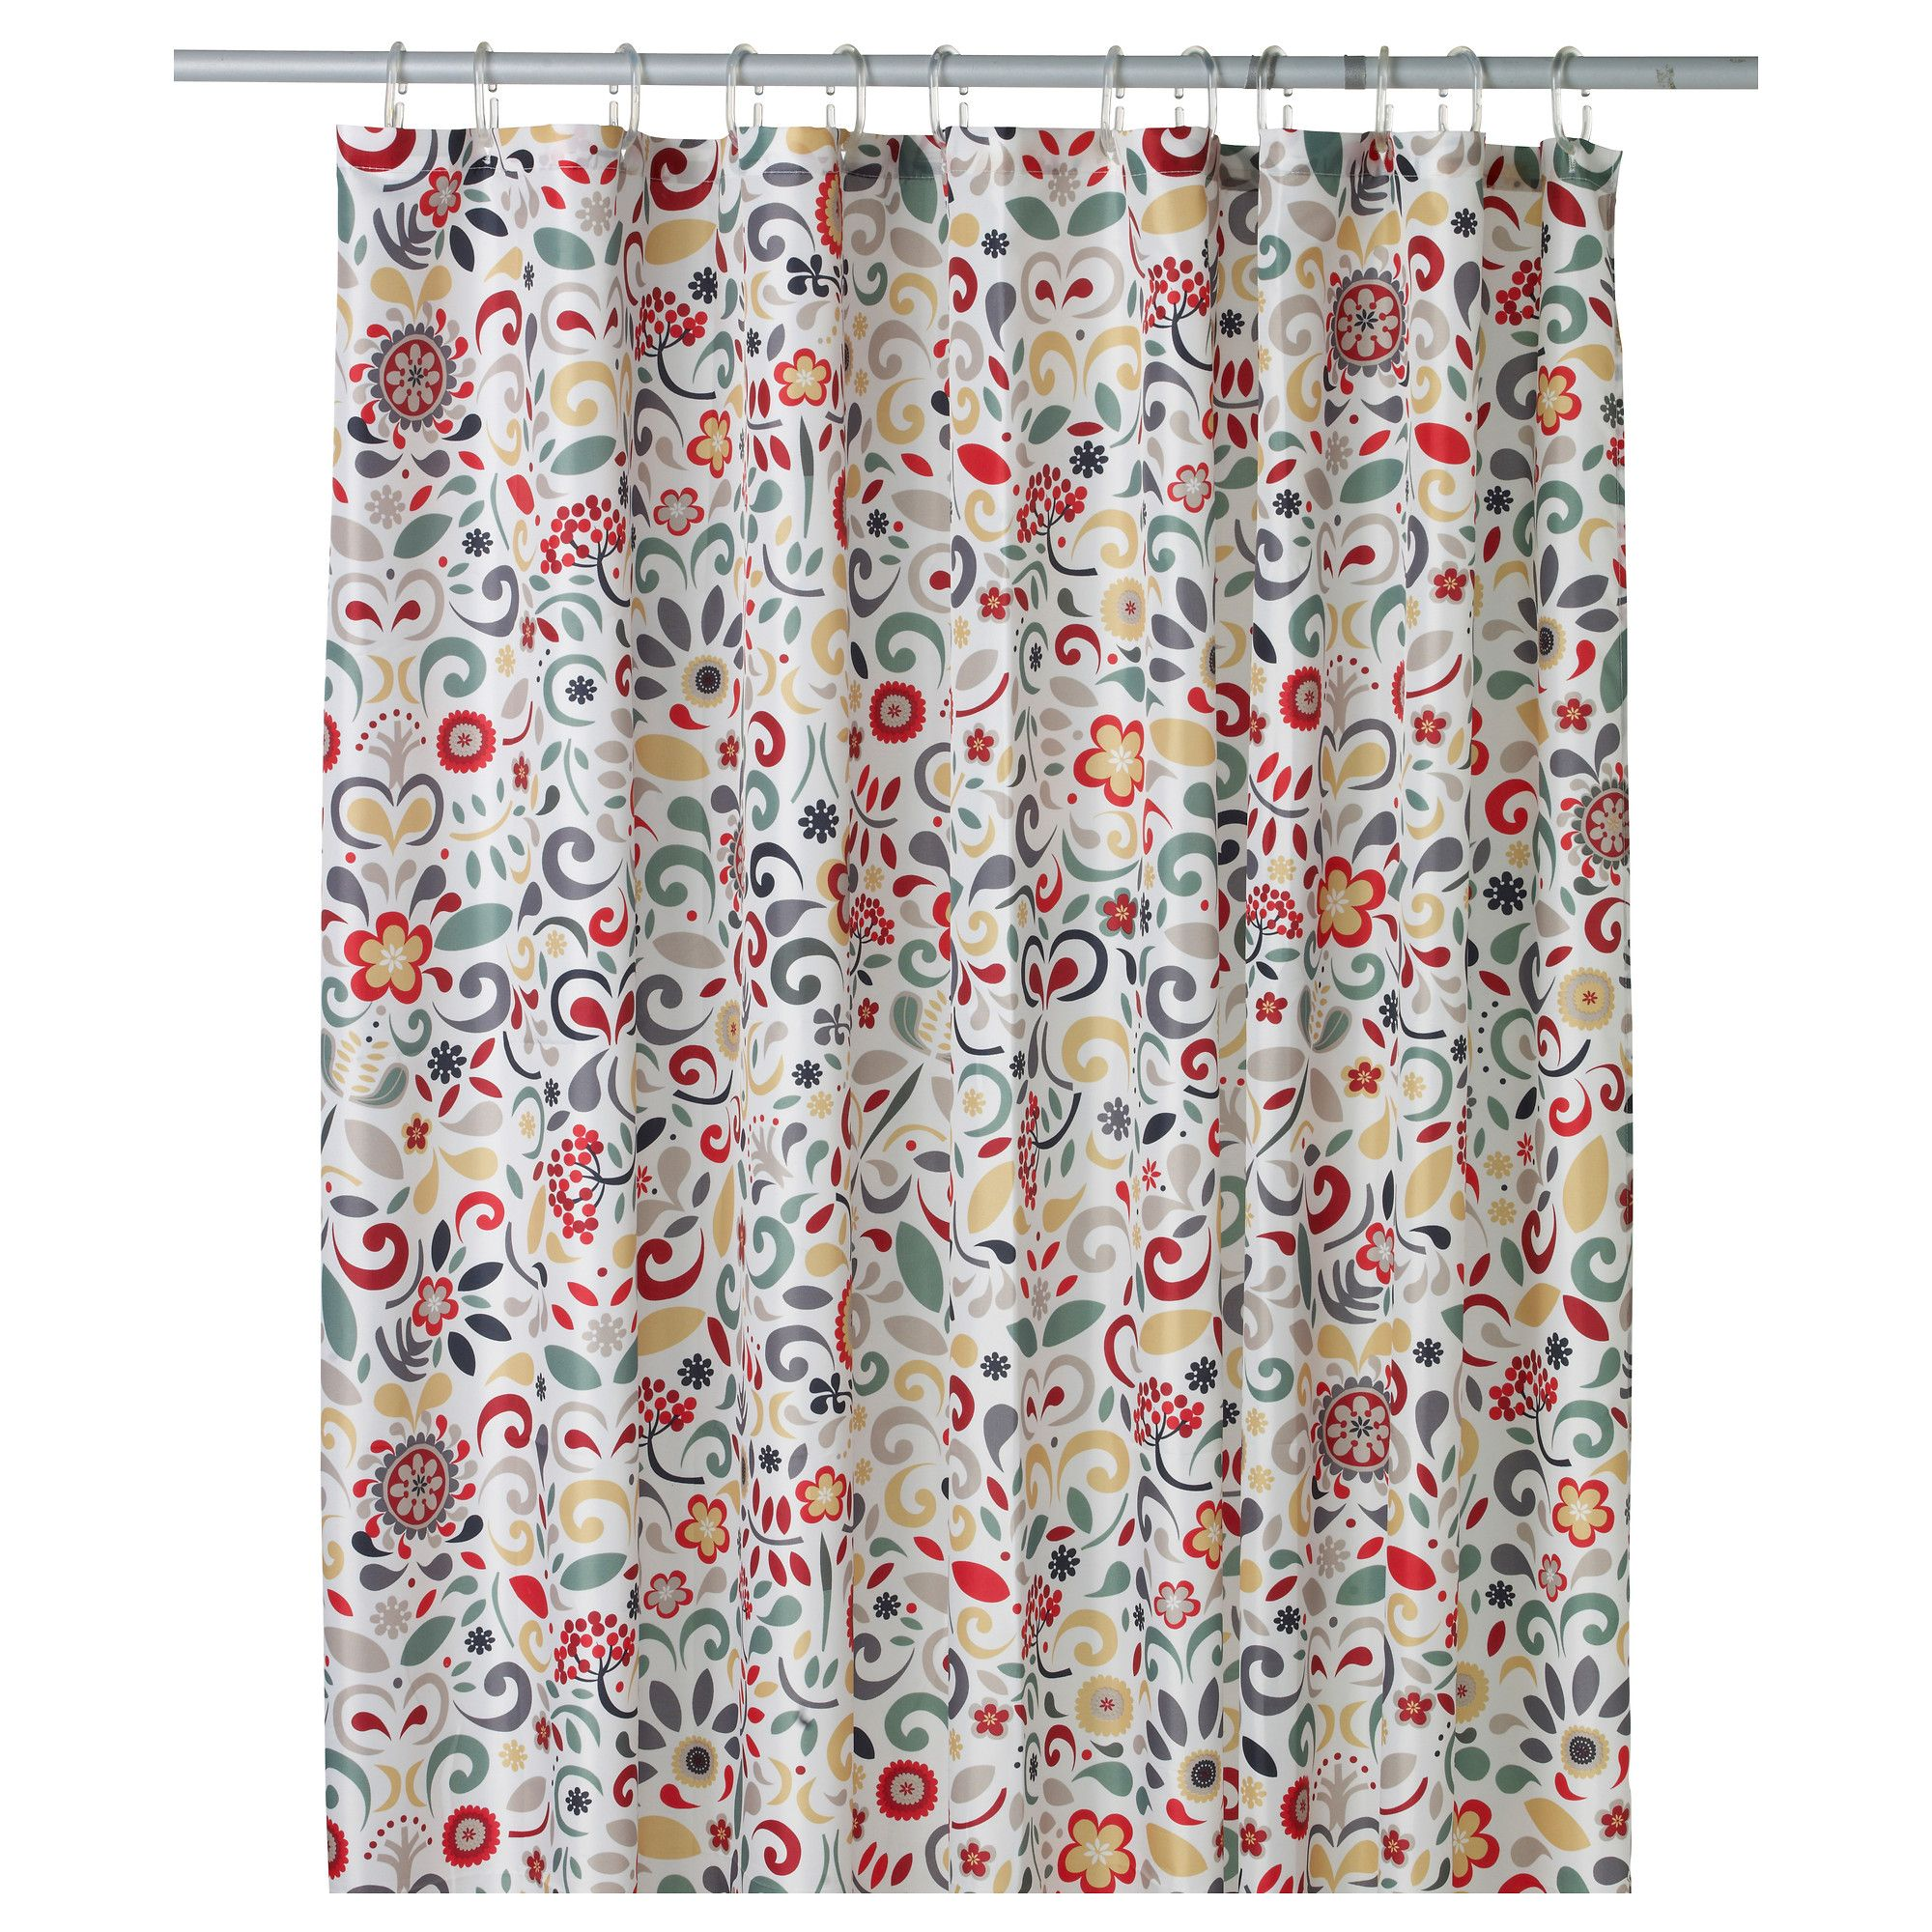 ÅKERKULLA Shower curtain - IKEA Use if need to separate spaces for ...